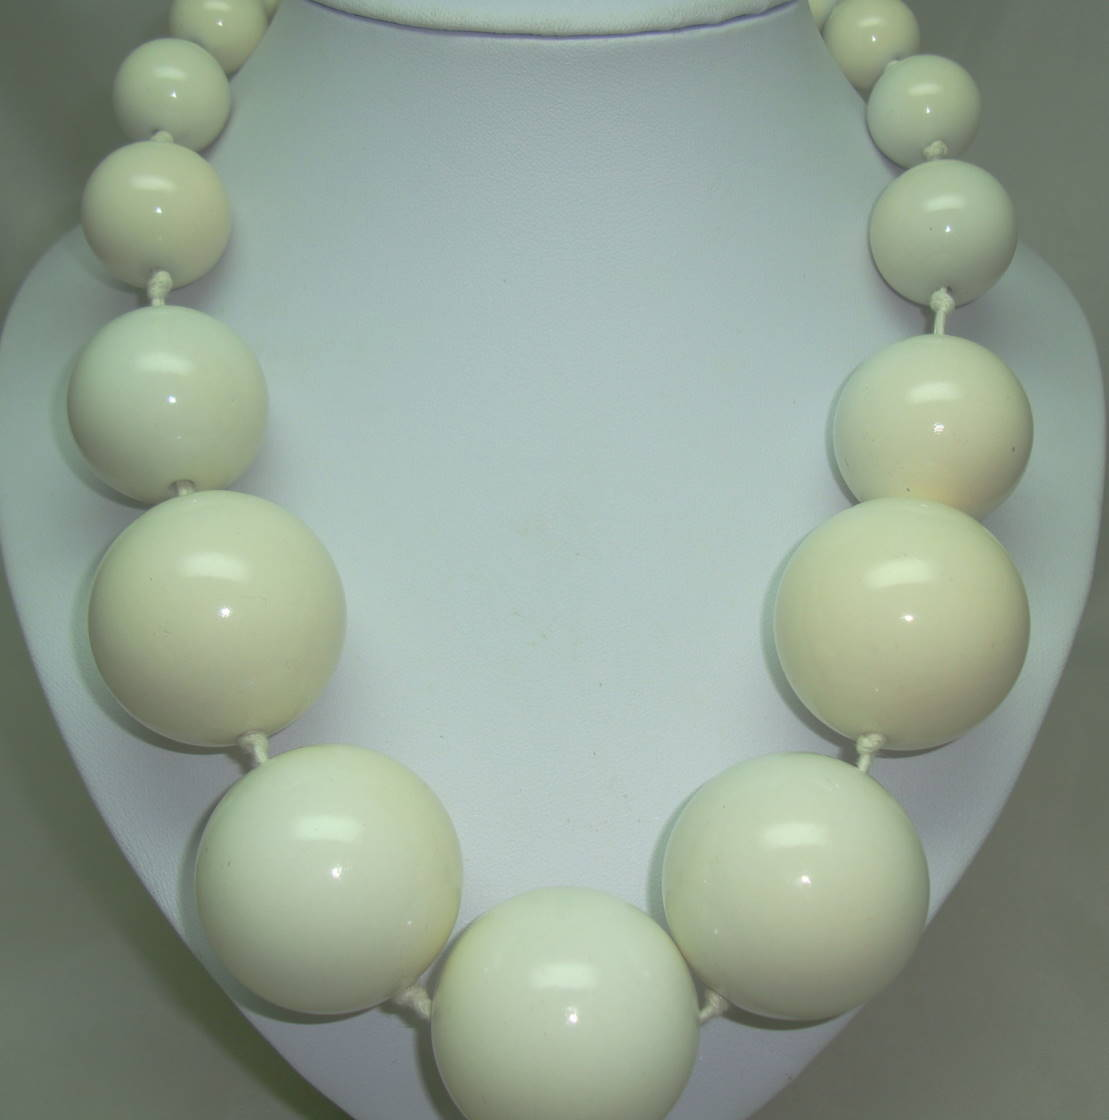 Stunning Chunky Cream Acrylic Oversized Bead Necklace Statement Piece!